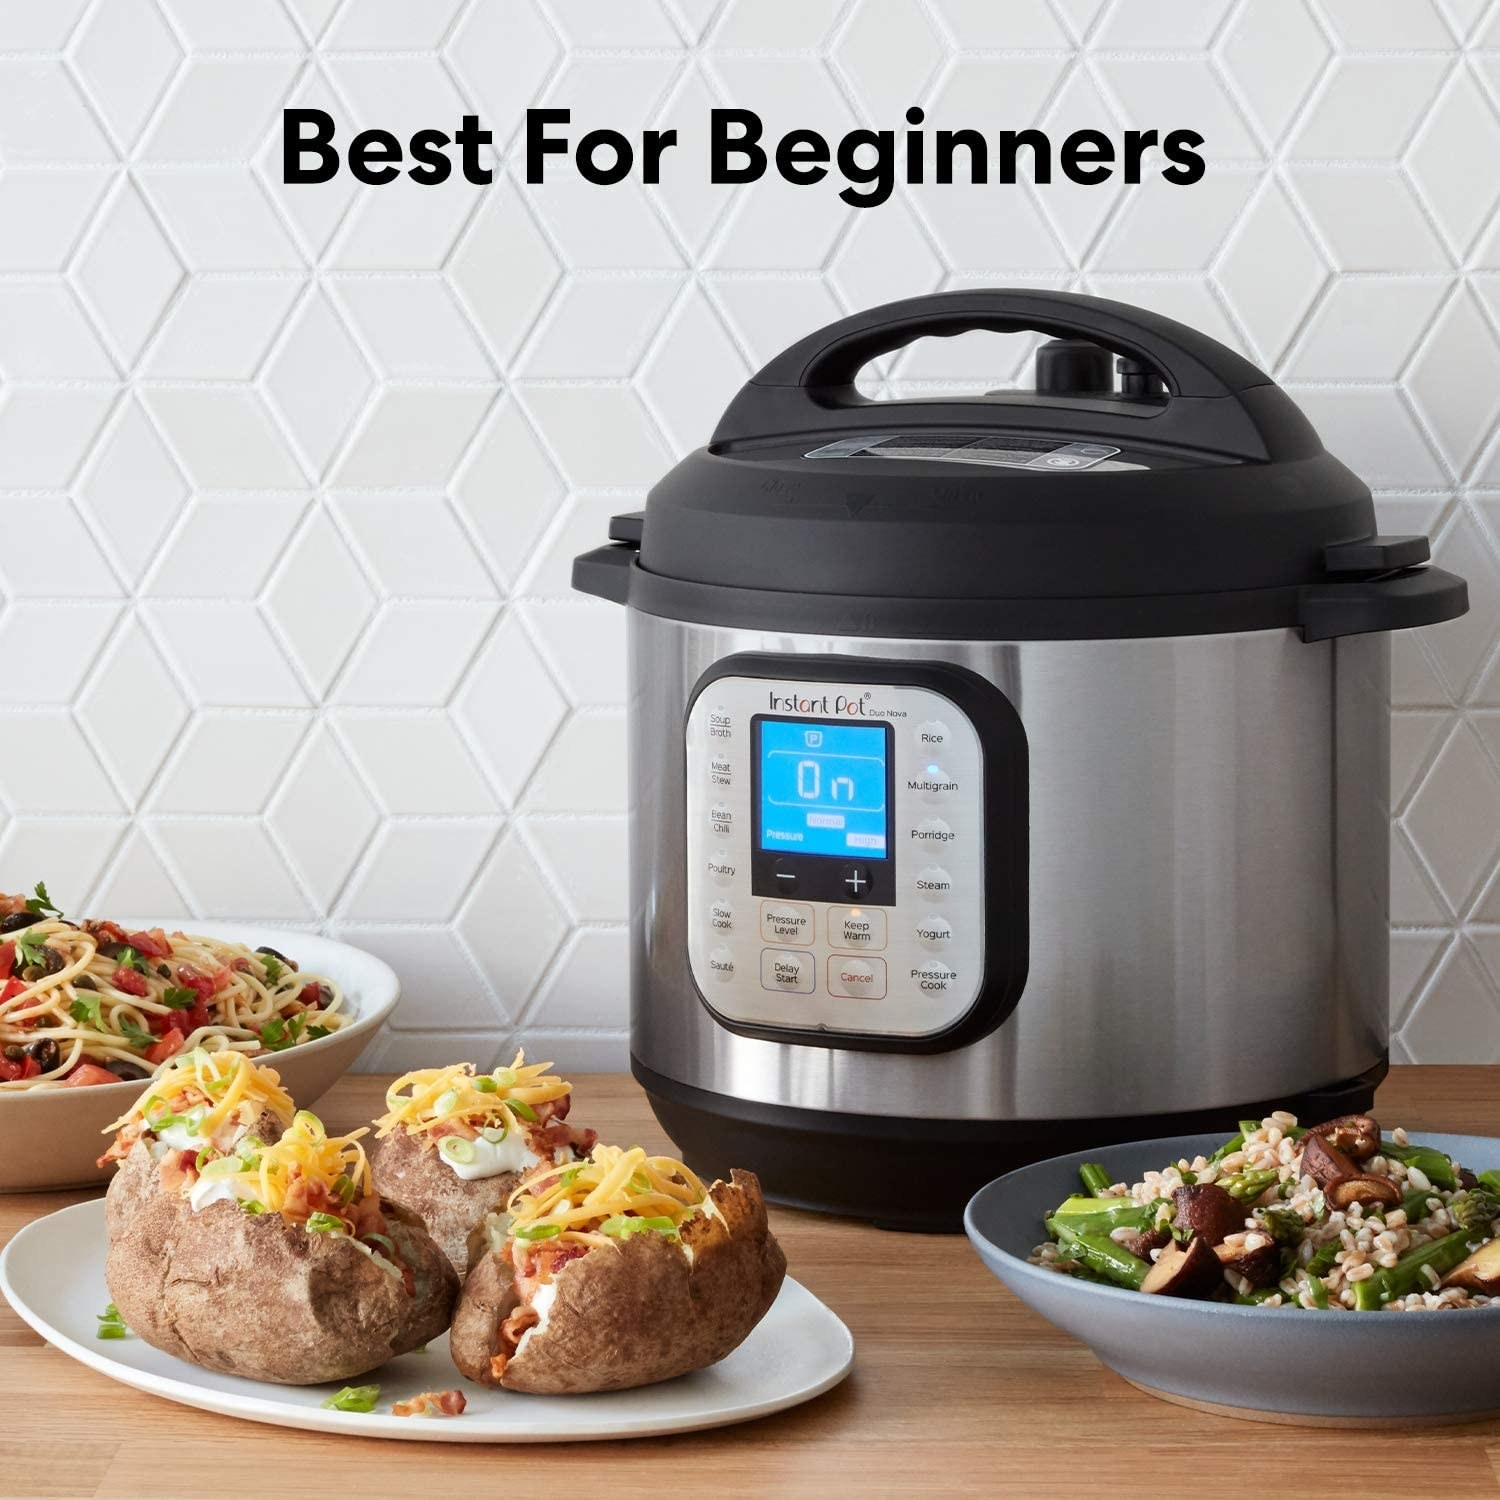 The Instant Pot Duo Nova that can make risotto, baked potatoes, and pasta